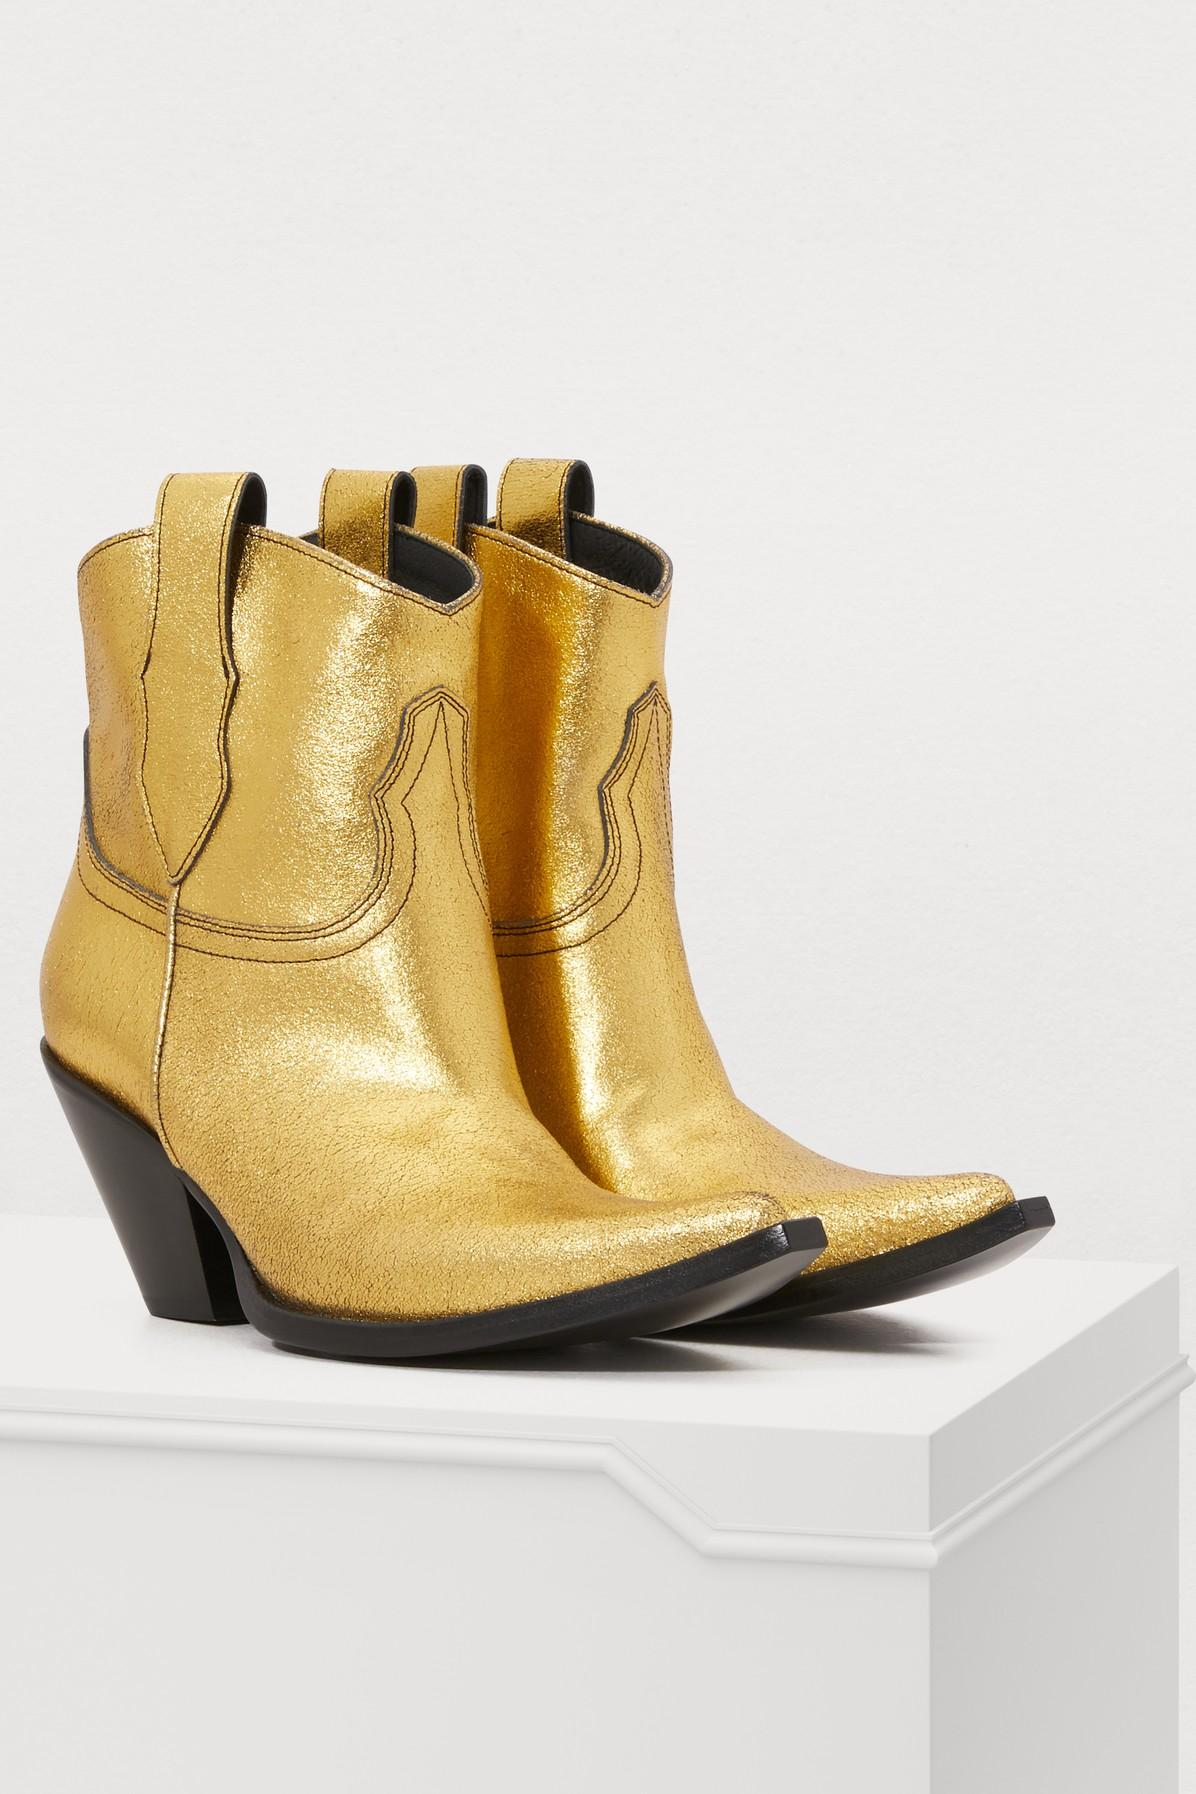 Maison Margiela Denim Mexas Ankle Boots in Gold (Metallic)